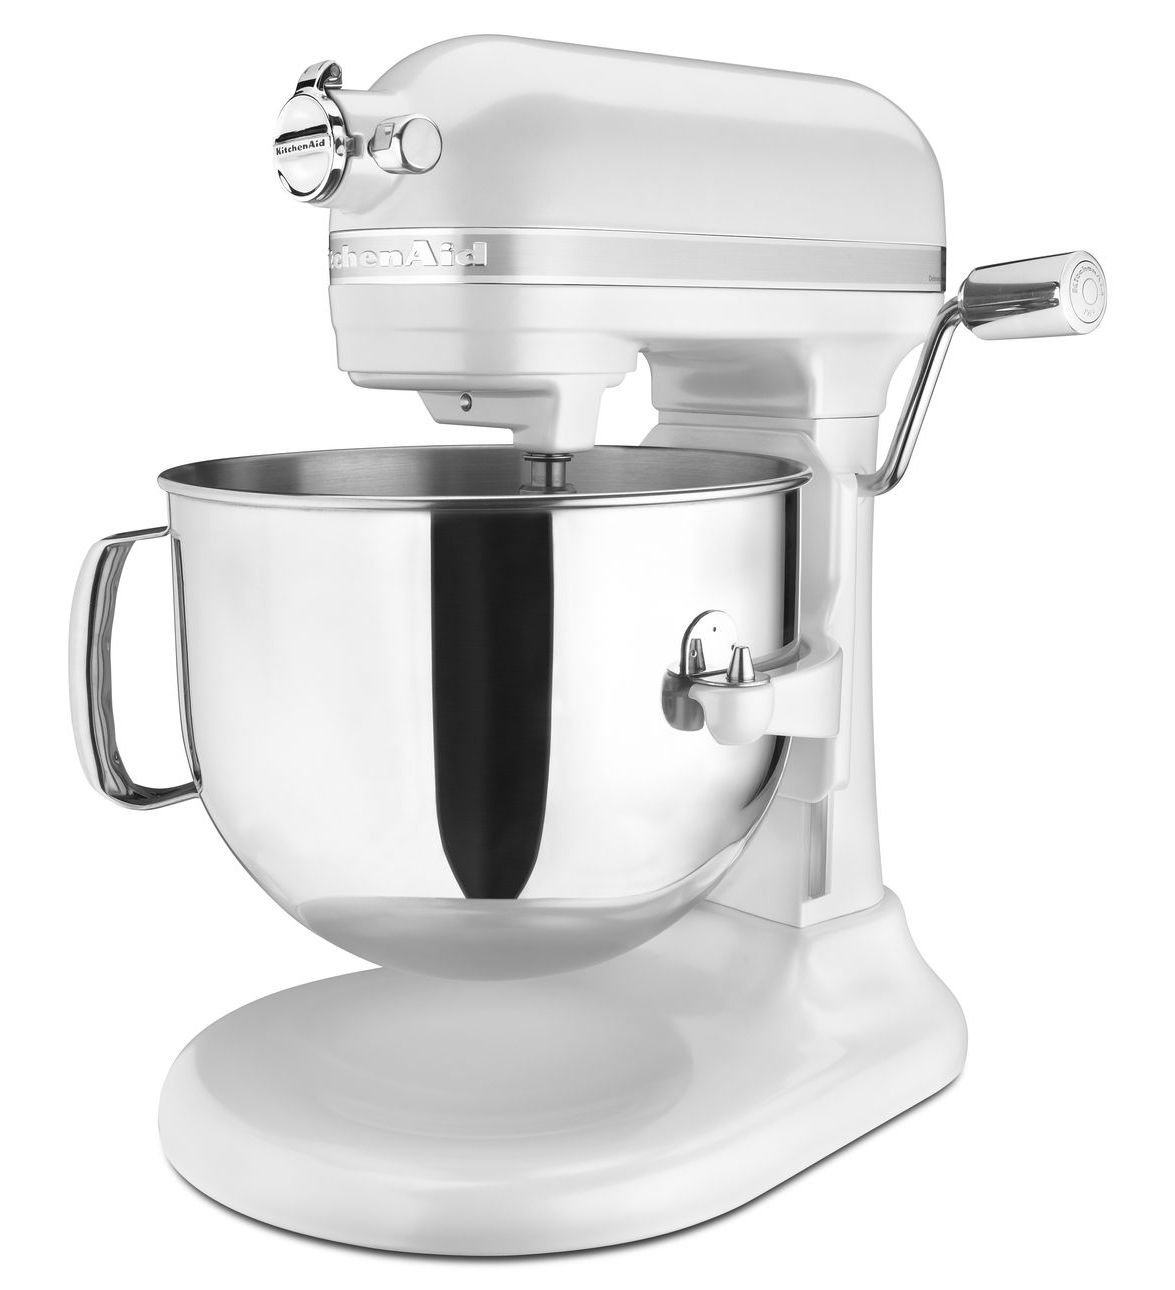 Amazon.com: KitchenAid KSM7586PFP 7-Quart Pro Line Stand ...